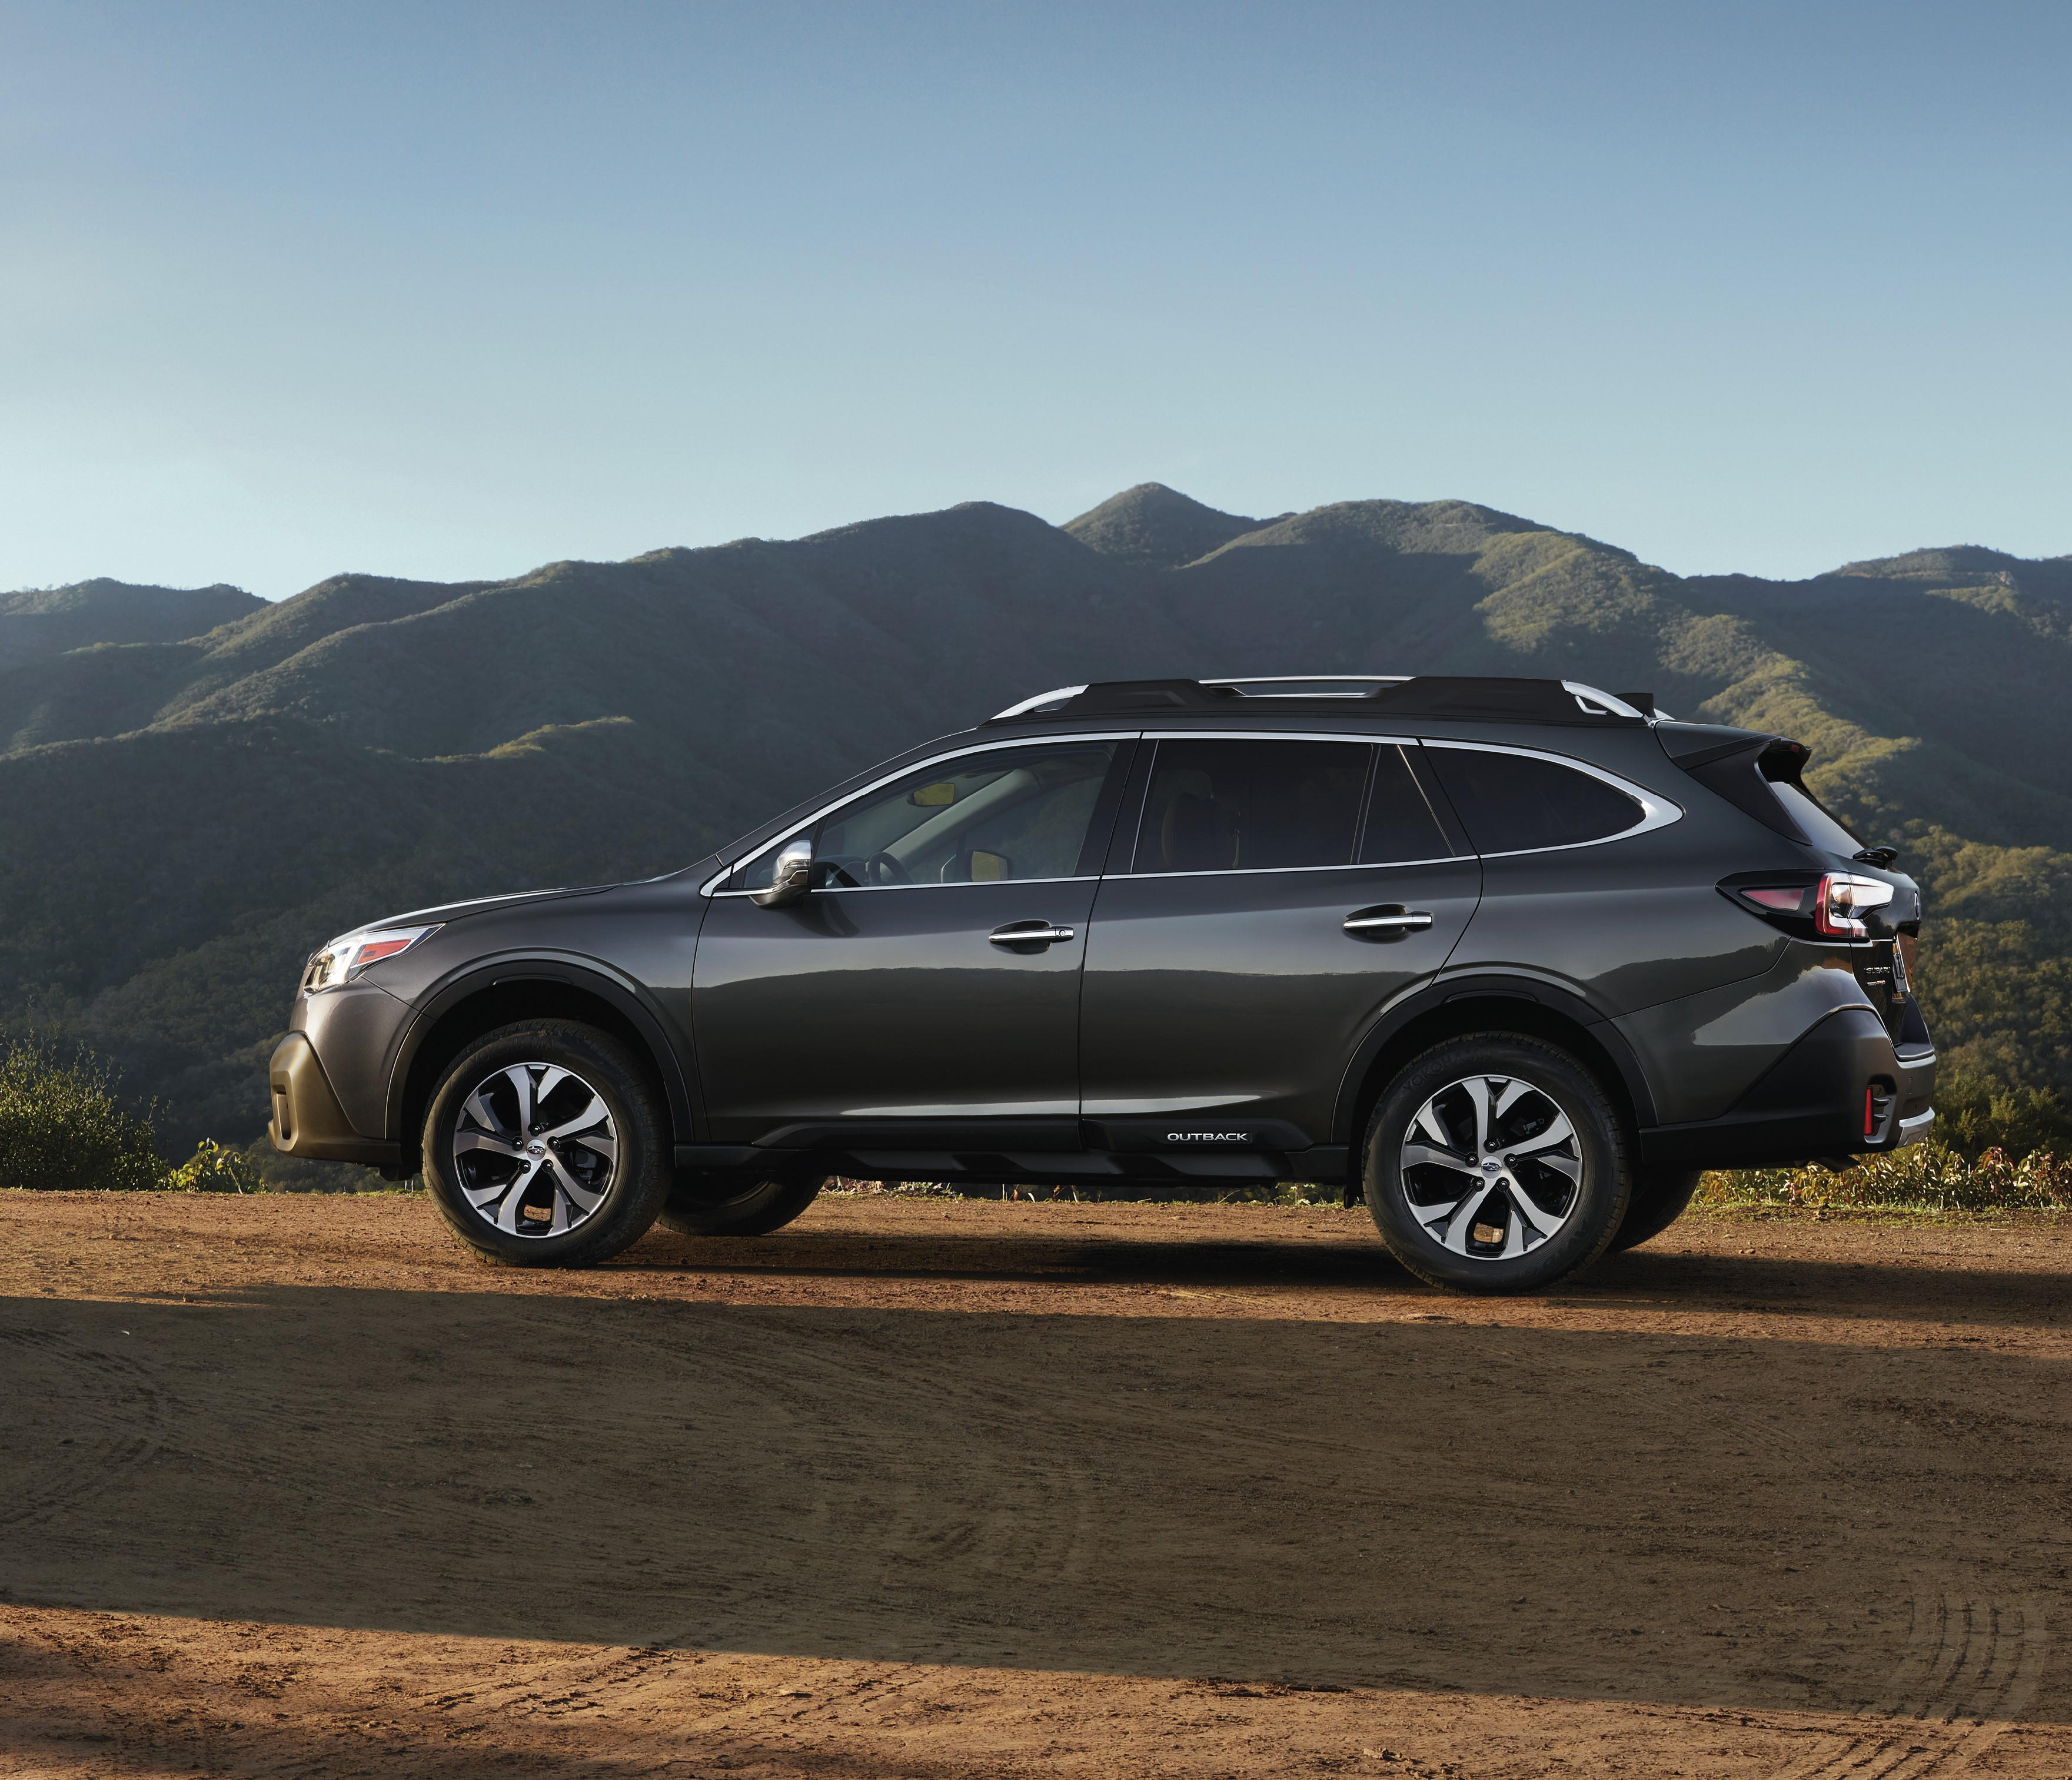 2020 Subaru Outback Top Speed